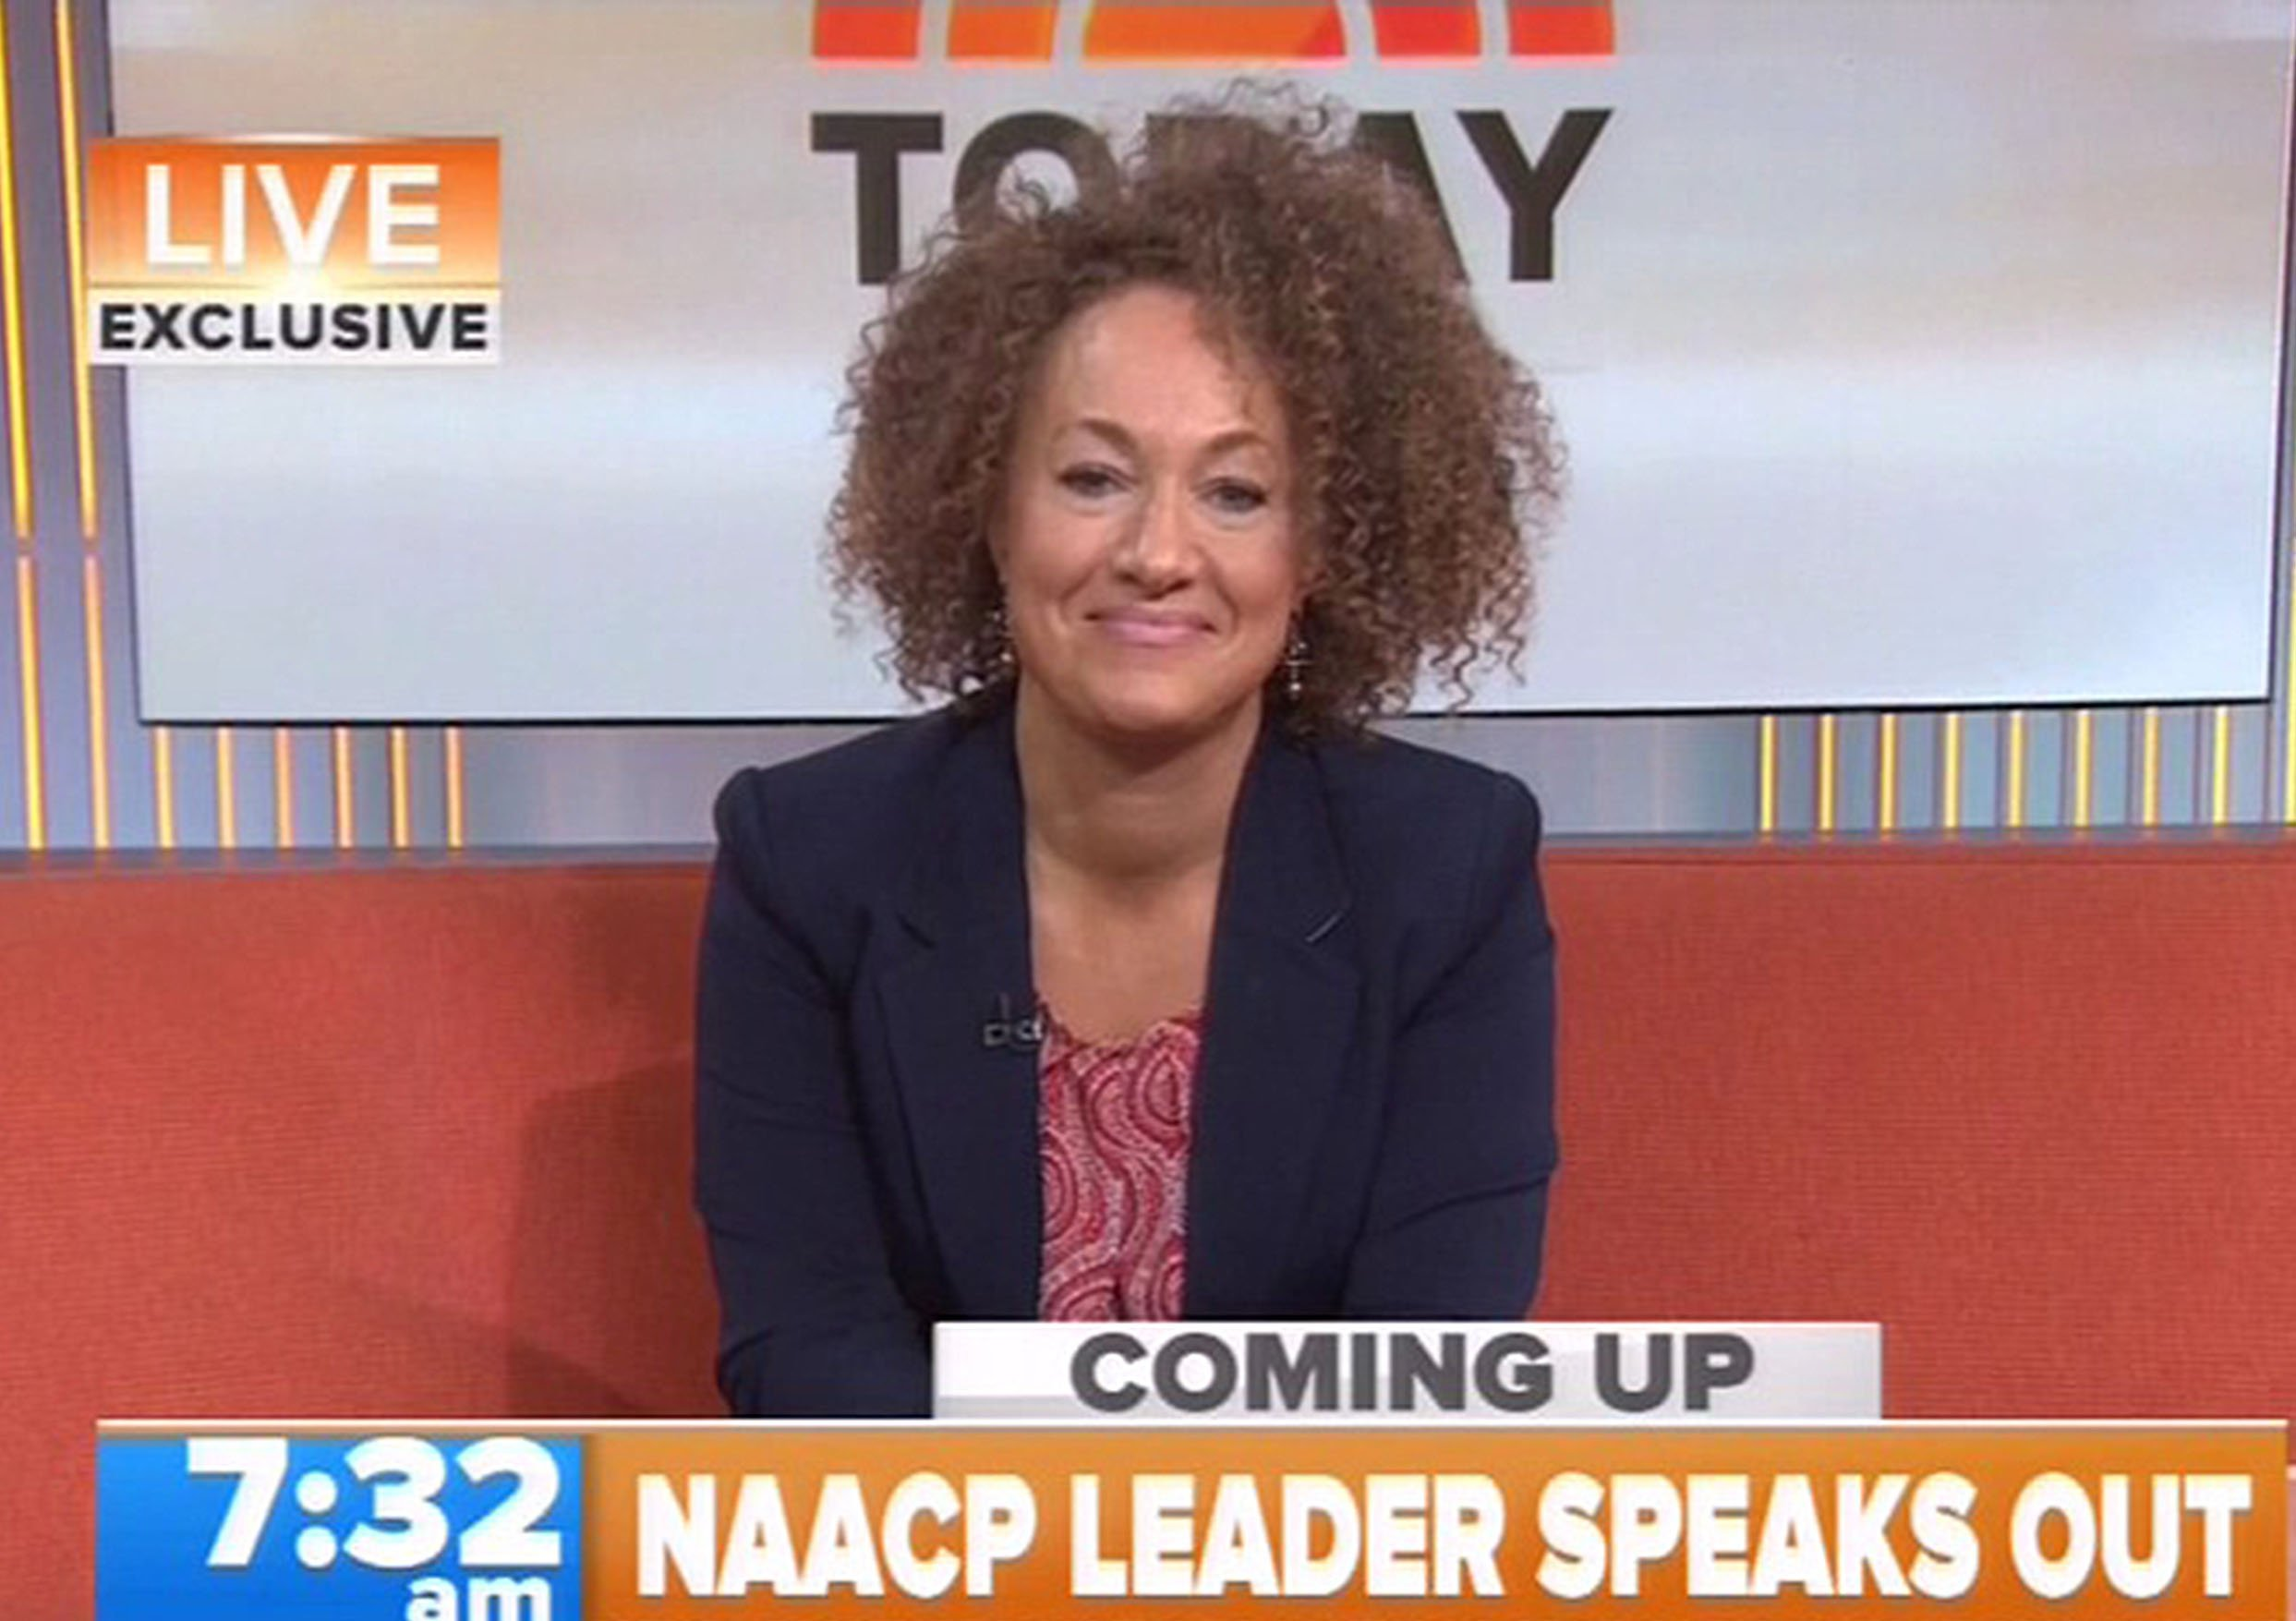 """16.JUNE.2015 - NEW YORK - USA....**** STRICTLY NOT AVAILABLE FOR USA ***....NAACP leader Rachel Dolezal rubbished suggestions that she is someway in a 'mockery blackface performance' as she appeared for her first live TV interview with Matt Lauer on The Today Show...Dolezal resigned on Monday as President of the NAACP's Spokane Chapter following the huge controversy over her racial identity after her parents had 'outed' the 37 year old as being a white woman...Asked if appearing and presenting herself as being a black woman was somewhat in anyway similar to wearing blackface, Dolezal denied such suggestions and hit back with: """"I have a huge issue with blackface""""..She then added: """"This is not some freak 'Birth of a Nation' mockery black performance. This is on a very real, connected level. Ive had to go there with the experience, not just a visible representation""""..Dolezal later added that she would draw pictures of herself using the 'brown' crayon instead of the 'peach' colored one, yet conceded that she did not identify as black until she became a teenager.......XPOSURE PHOTOS DOES NOT CLAIM ANY COPYRIGHT OR LICENSE IN THE ATTACHED MATERIAL. ANY DOWNLOADING FEES CHARGED BY XPOSURE ARE FOR XPOSURE'S SERVICES ONLY, AND DO NOT, NOR ARE THEY INTENDED TO, CONVEY TO THE USER ANY COPYRIGHT OR LICENSE IN THE MATERIAL. BY PUBLISHING THIS MATERIAL , THE USER EXPRESSLY AGREES TO INDEMNIFY AND TO HOLD XPOSURE HARMLESS FROM ANY CLAIMS, DEMANDS, OR CAUSES OF ACTION ARISING OUT OF OR CONNECTED IN ANY WAY WITH USER'S PUBLICATION OF THE MATERIAL. ........BYLINE MUST READ : NBC/XPOSUREPHOTOS.COM....PLEASE CREDIT AS PER BYLINE *UK CLIENTS MUST CALL PRIOR TO TV OR ONLINE USAGE PLEASE TELEPHONE 44 208 344 2007"""